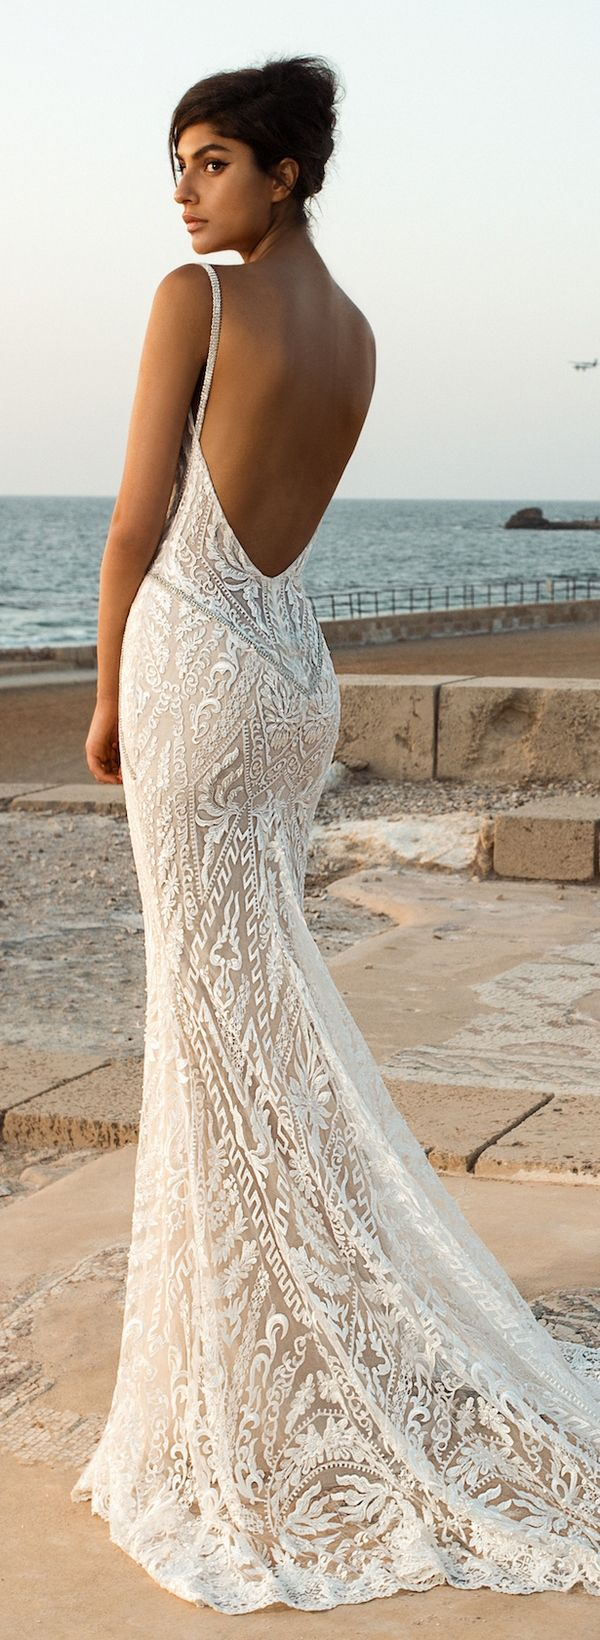 Fall Wedding Dresses 2017 GALA III by Galia Lahav / http://www.himisspuff.com/galia-lahav-fall-2017-wedding-dresses/6/